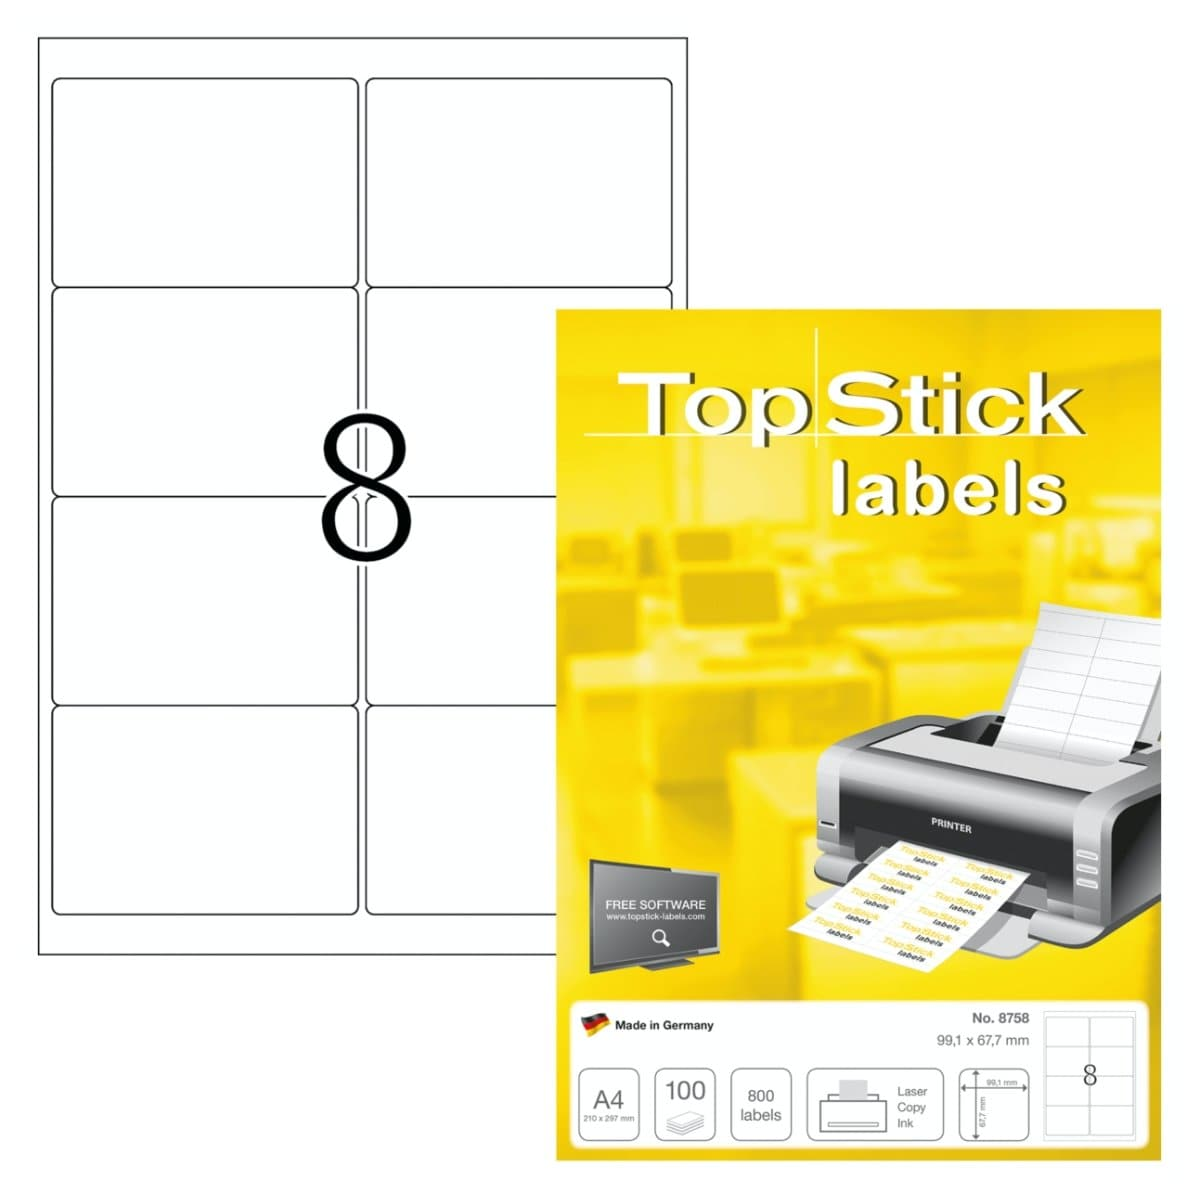 TopStick labels 8 labels/sheet, round corners, 99.1 x 67.7 mm, 100sheets/pack, White